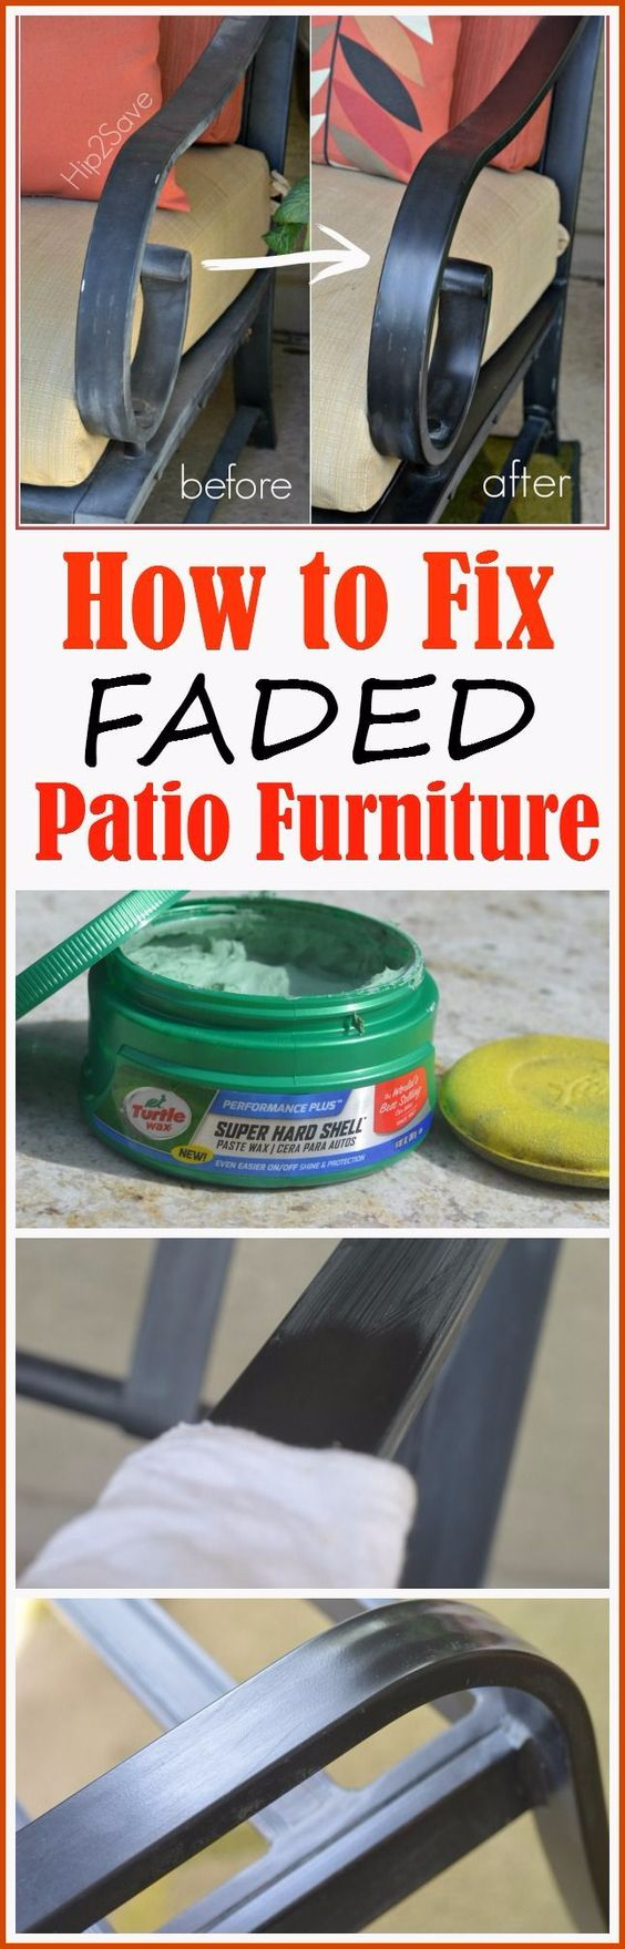 DIY Home Improvement Ideas- Fixing Faded Patio Furniture - Home Repair Ideas, Home Repairs On A Budget, Home Repair Tips, Living Room, Bedroom, Kitchen Repair, Home Improvement, Quick And Easy Home Tips #diy #homeimprovement #diyhome #homerepair